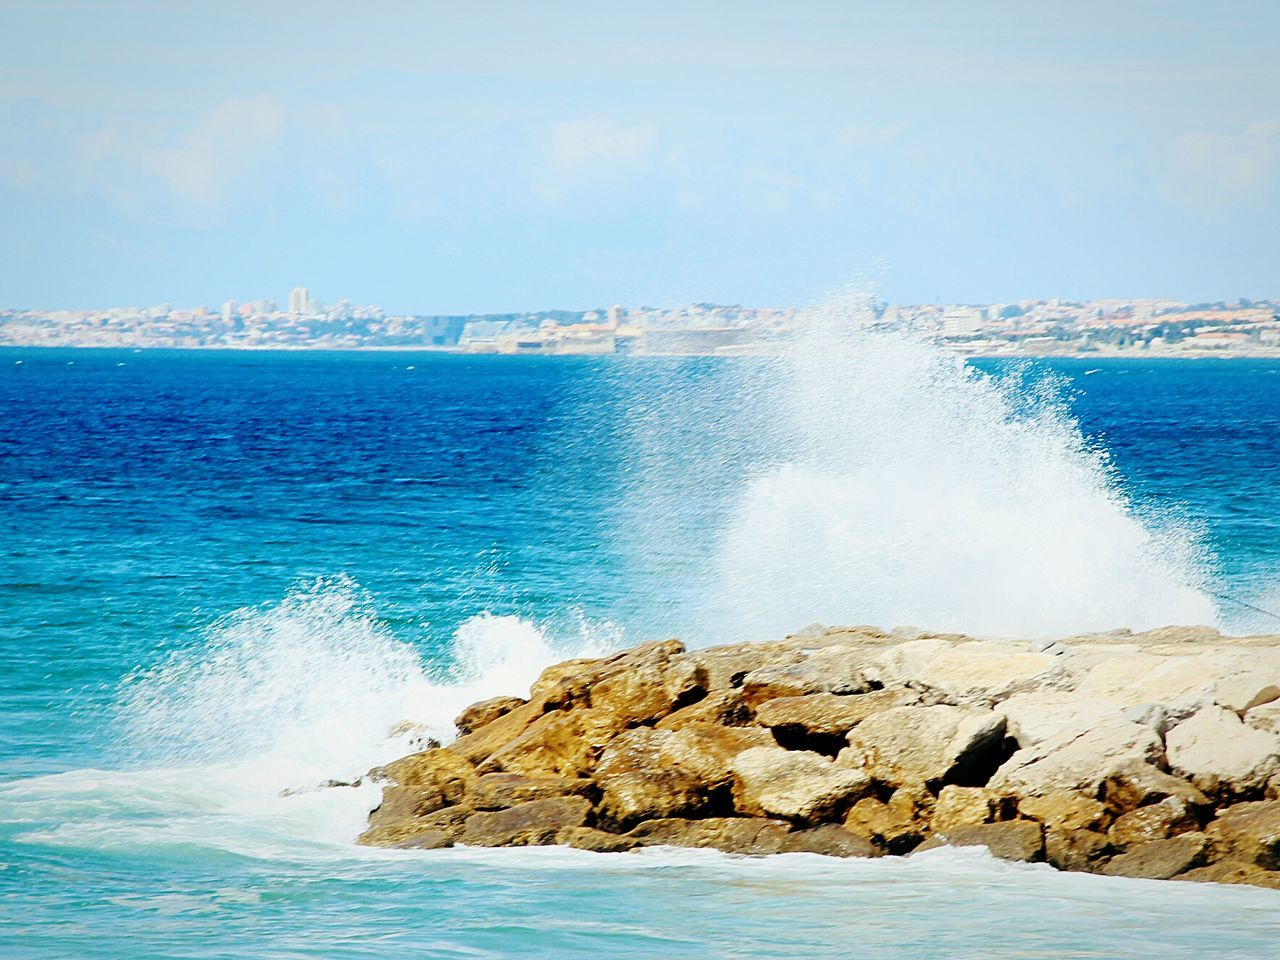 sea, water, beauty in nature, nature, horizon over water, rock - object, motion, blue, sky, no people, day, scenics, power in nature, wave, rough, breaking, crash, force, outdoors